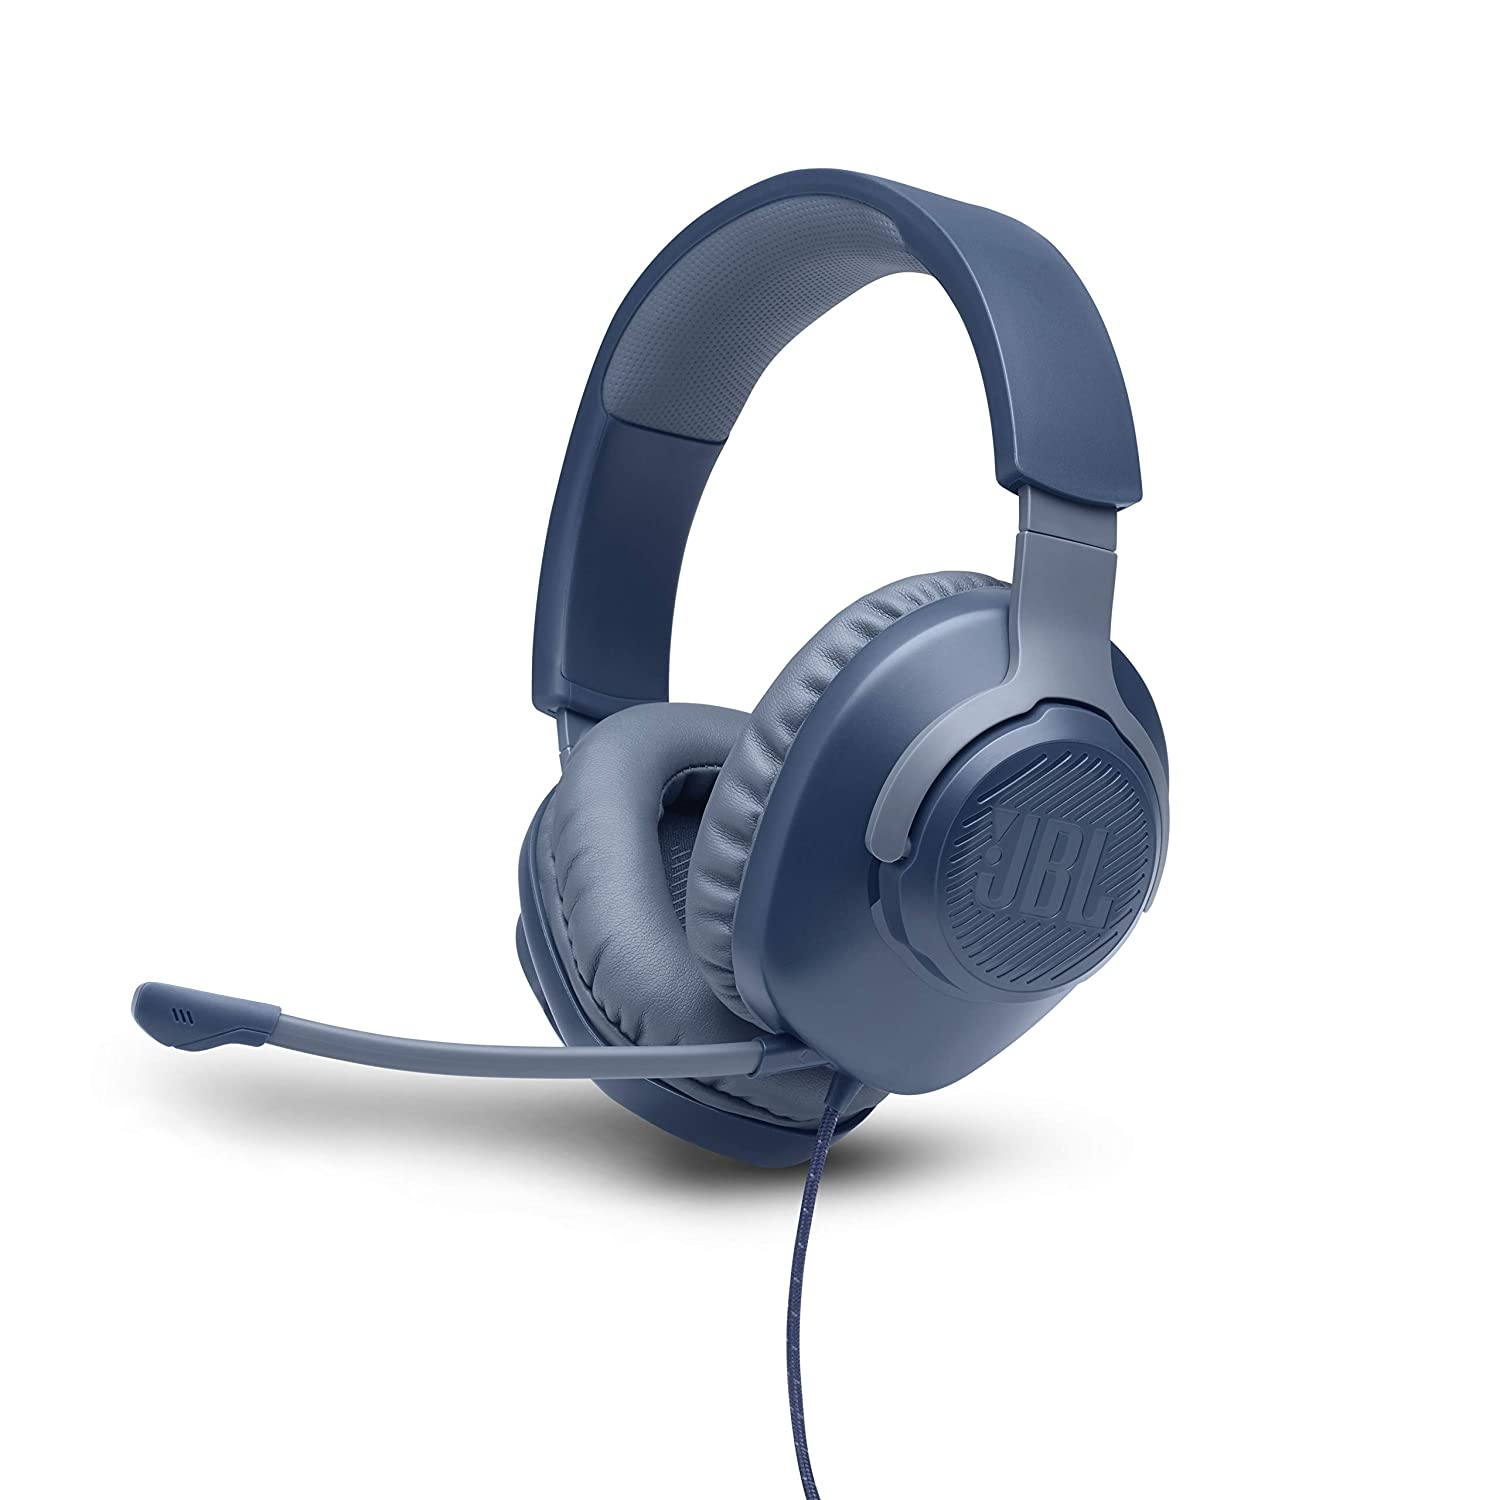 Renewed  JBL Quantum 100 Wired Over Ear Gaming Headset with Detachable Mic  Blue  PC Headsets